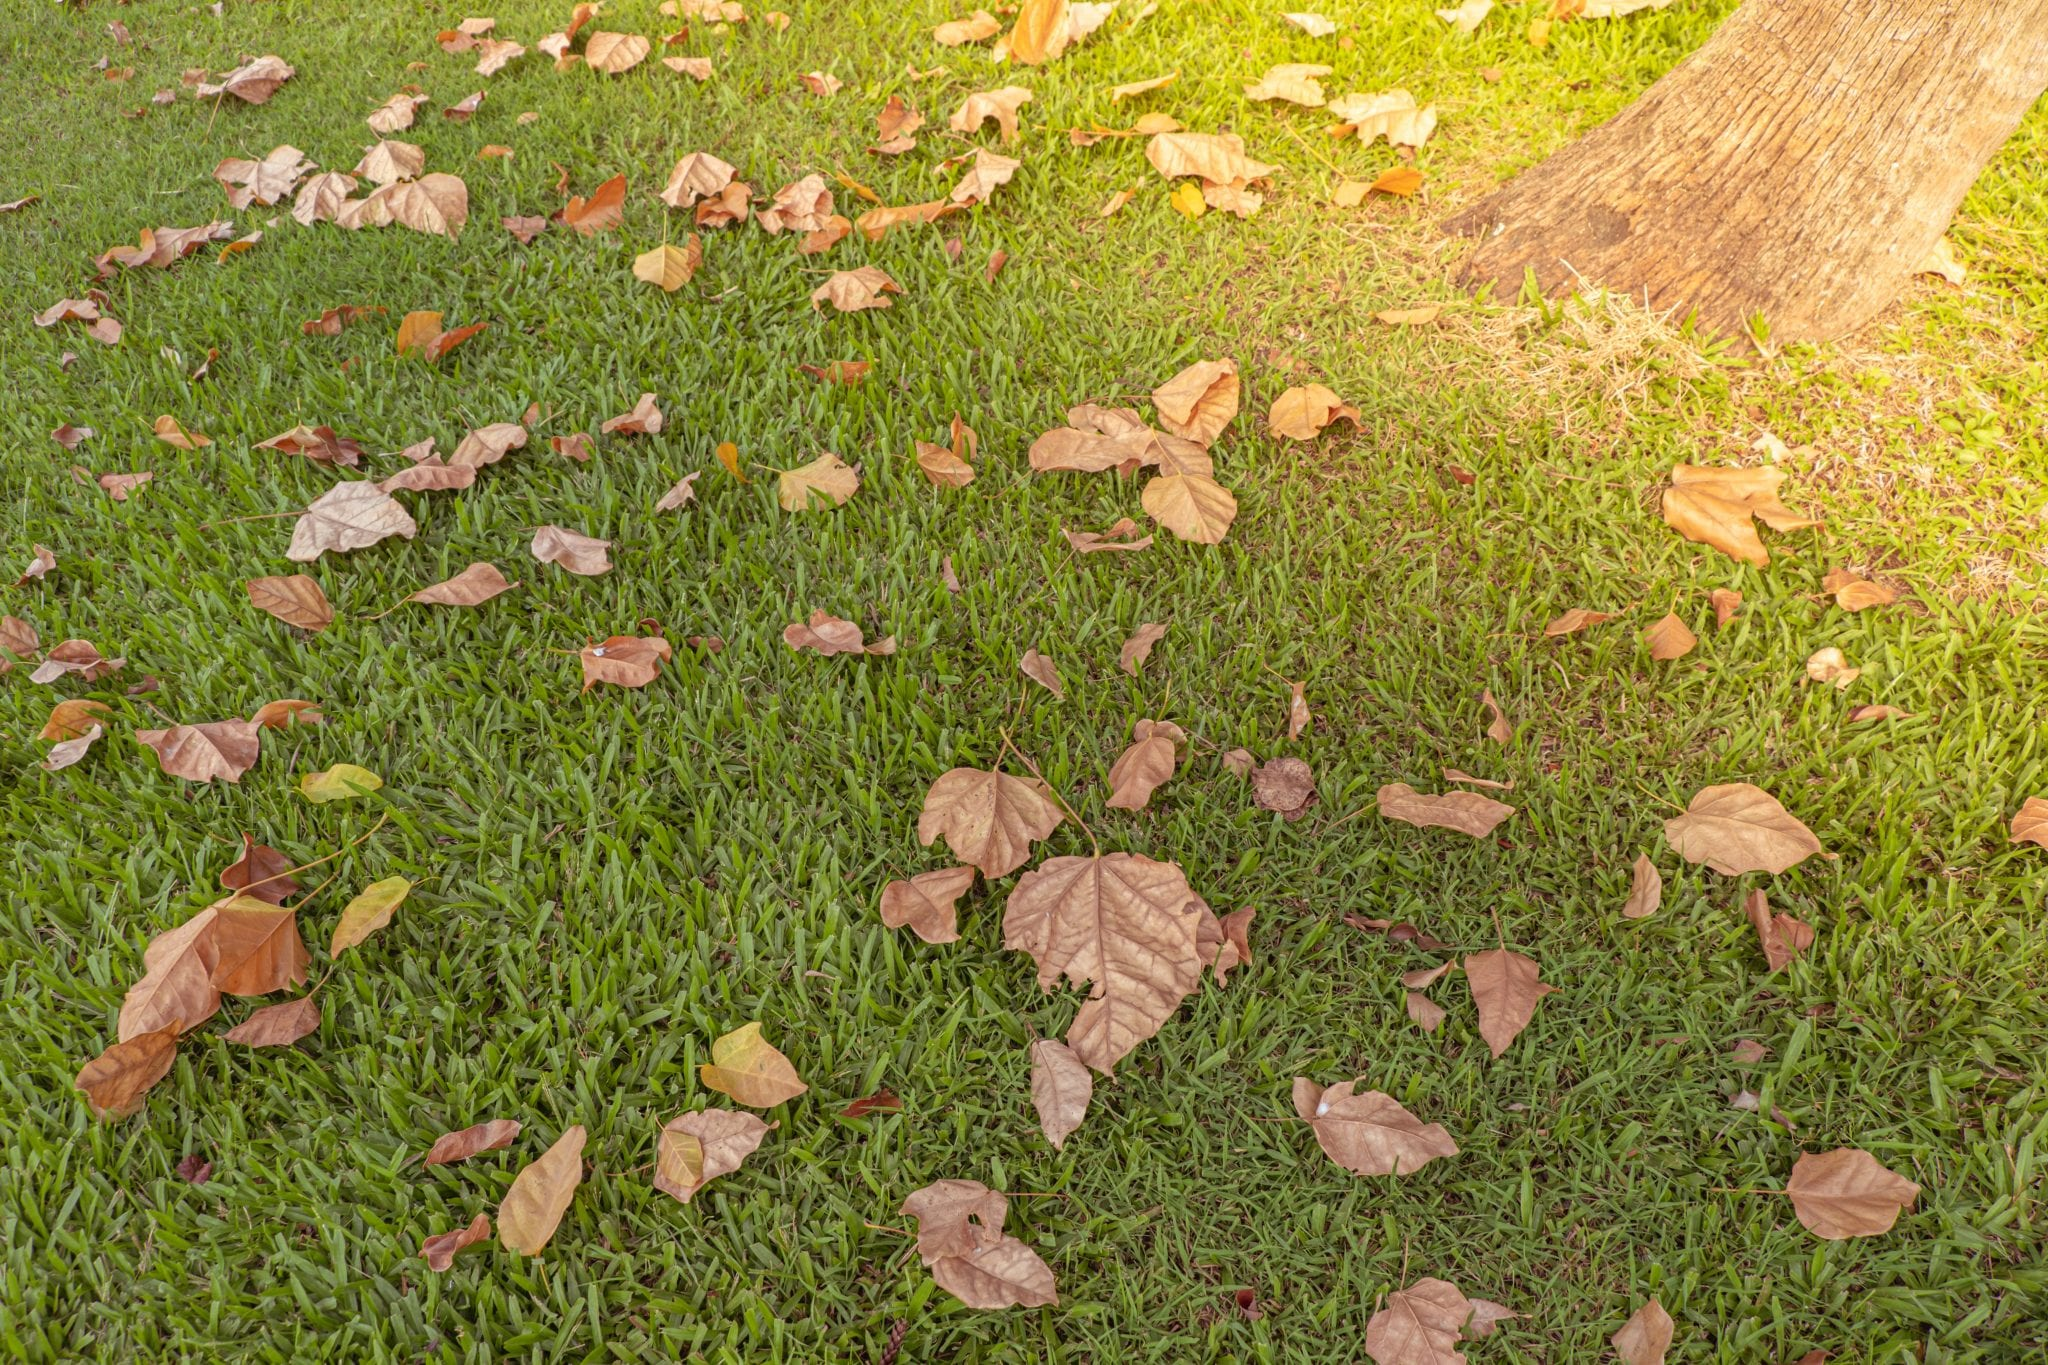 Brown leaves on turf